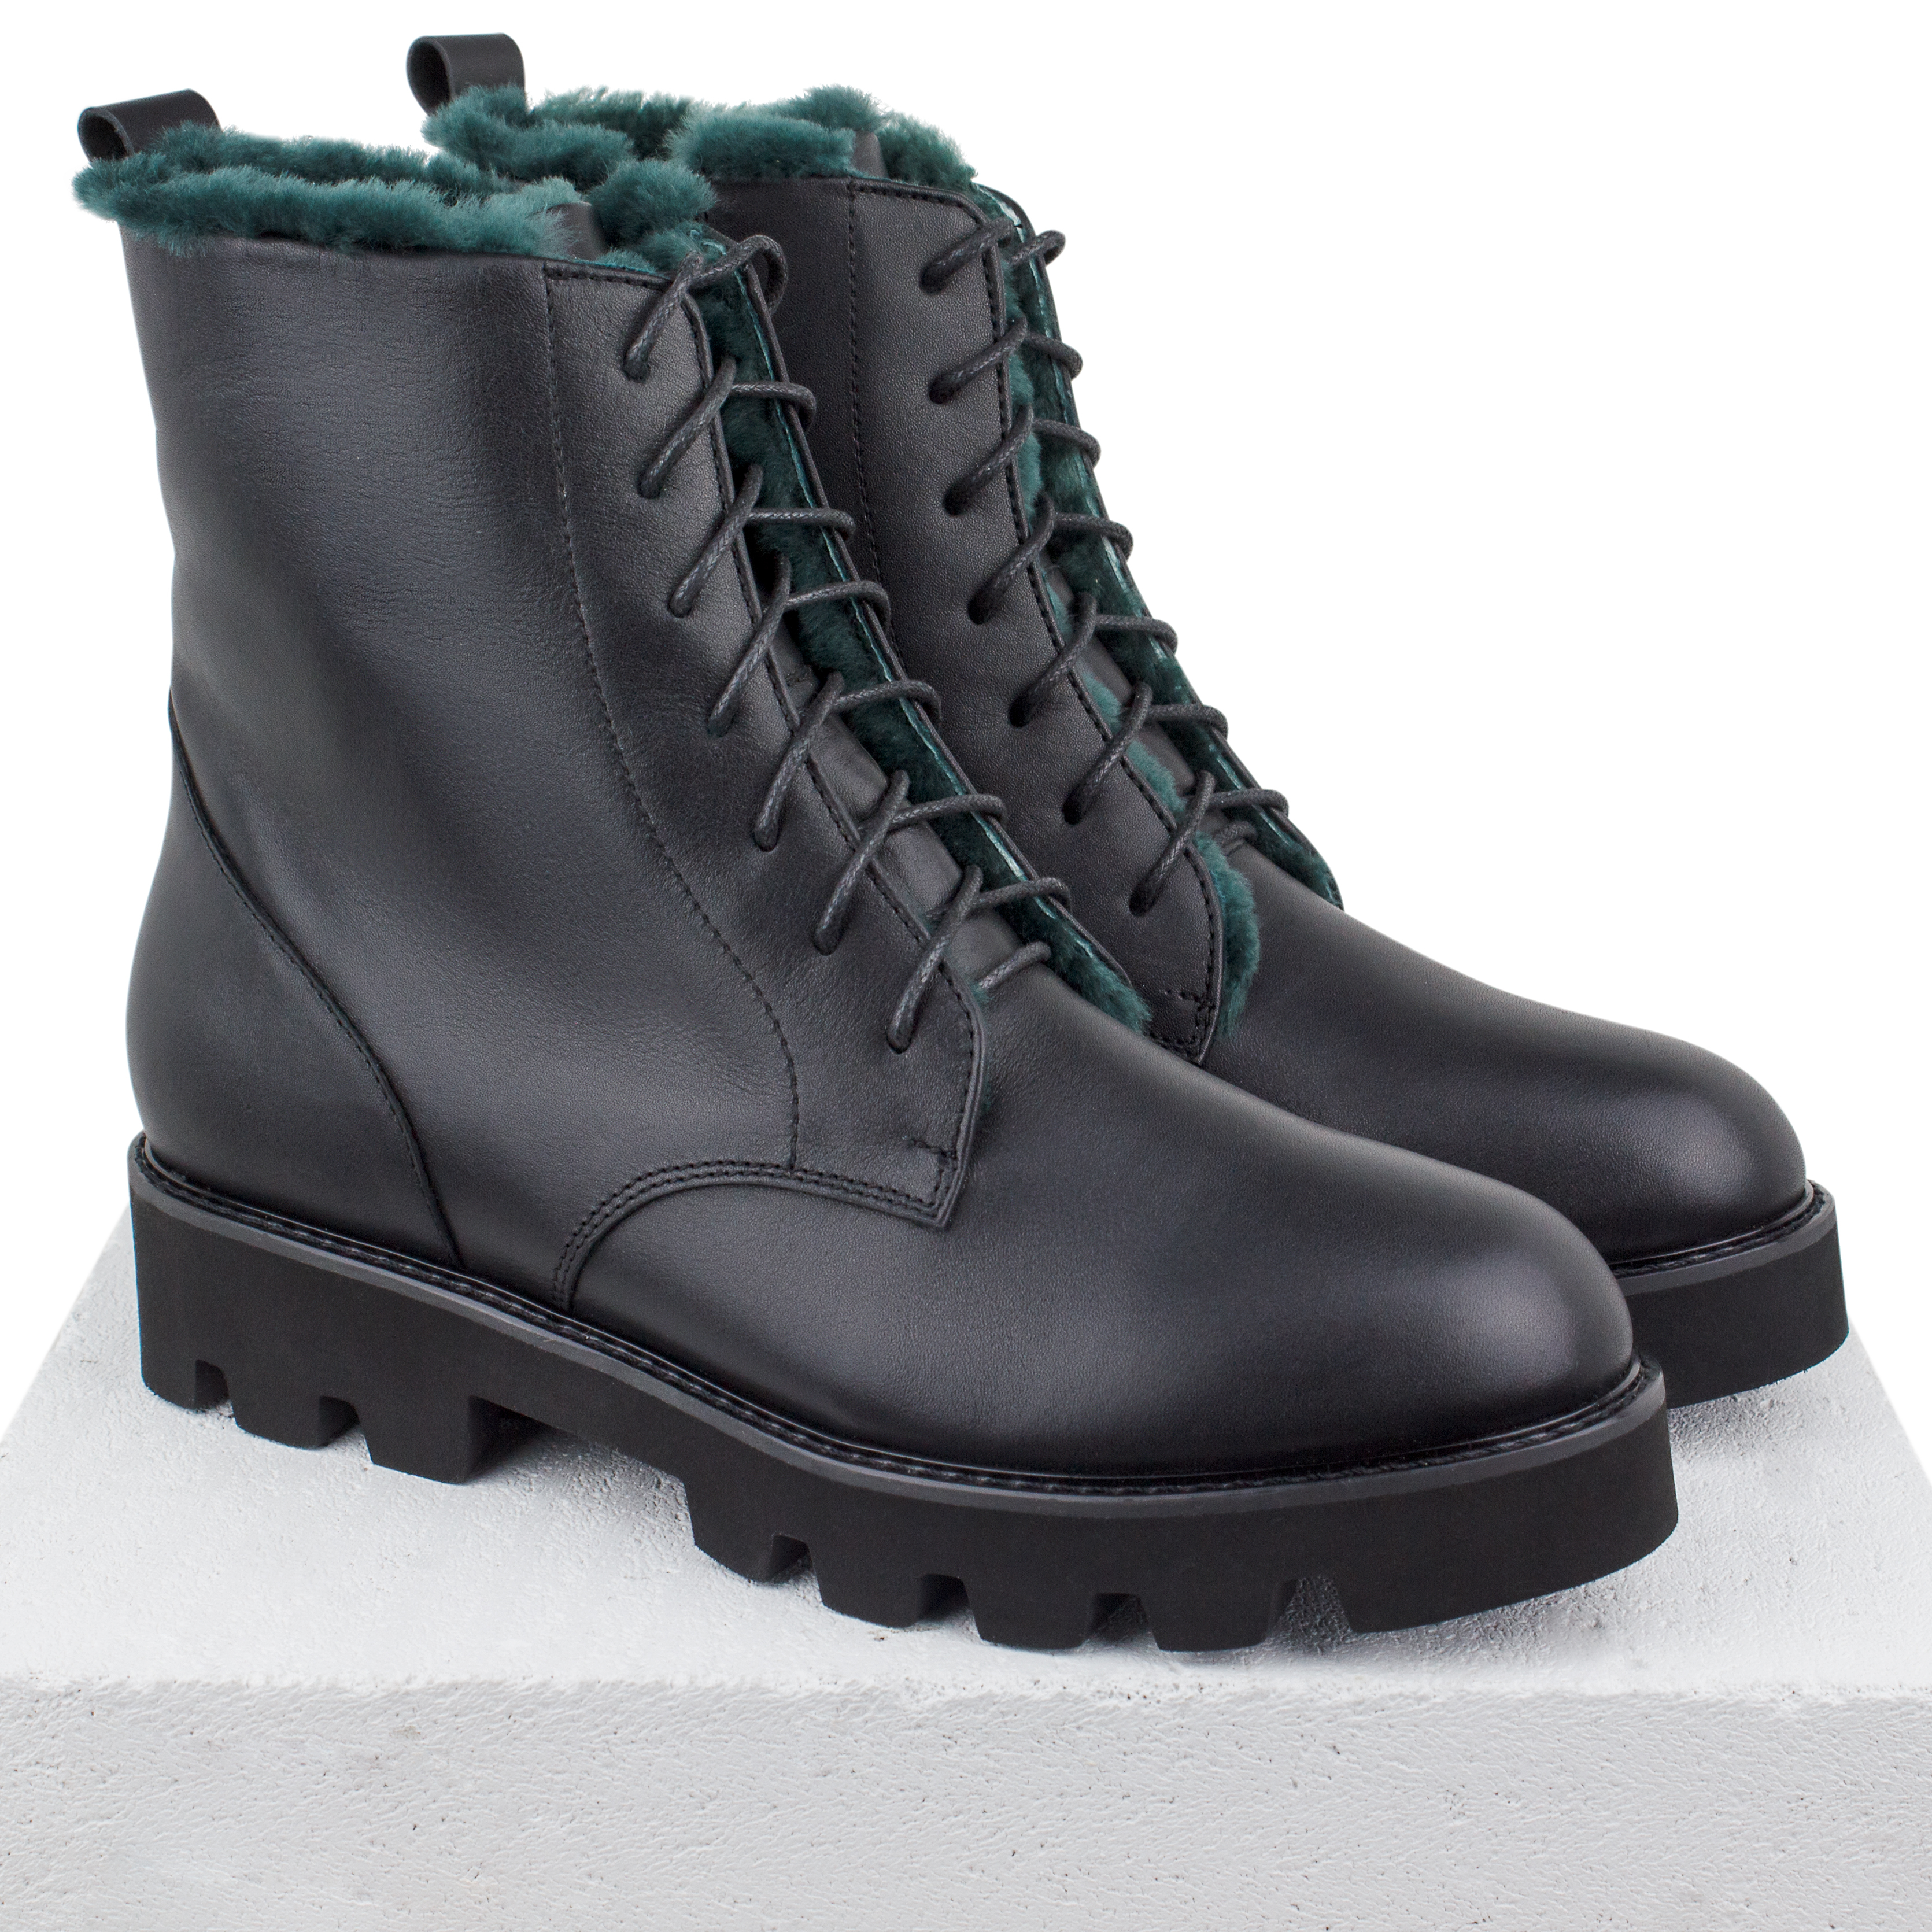 Women's high boots made of genuine leather Lapti black on green fur